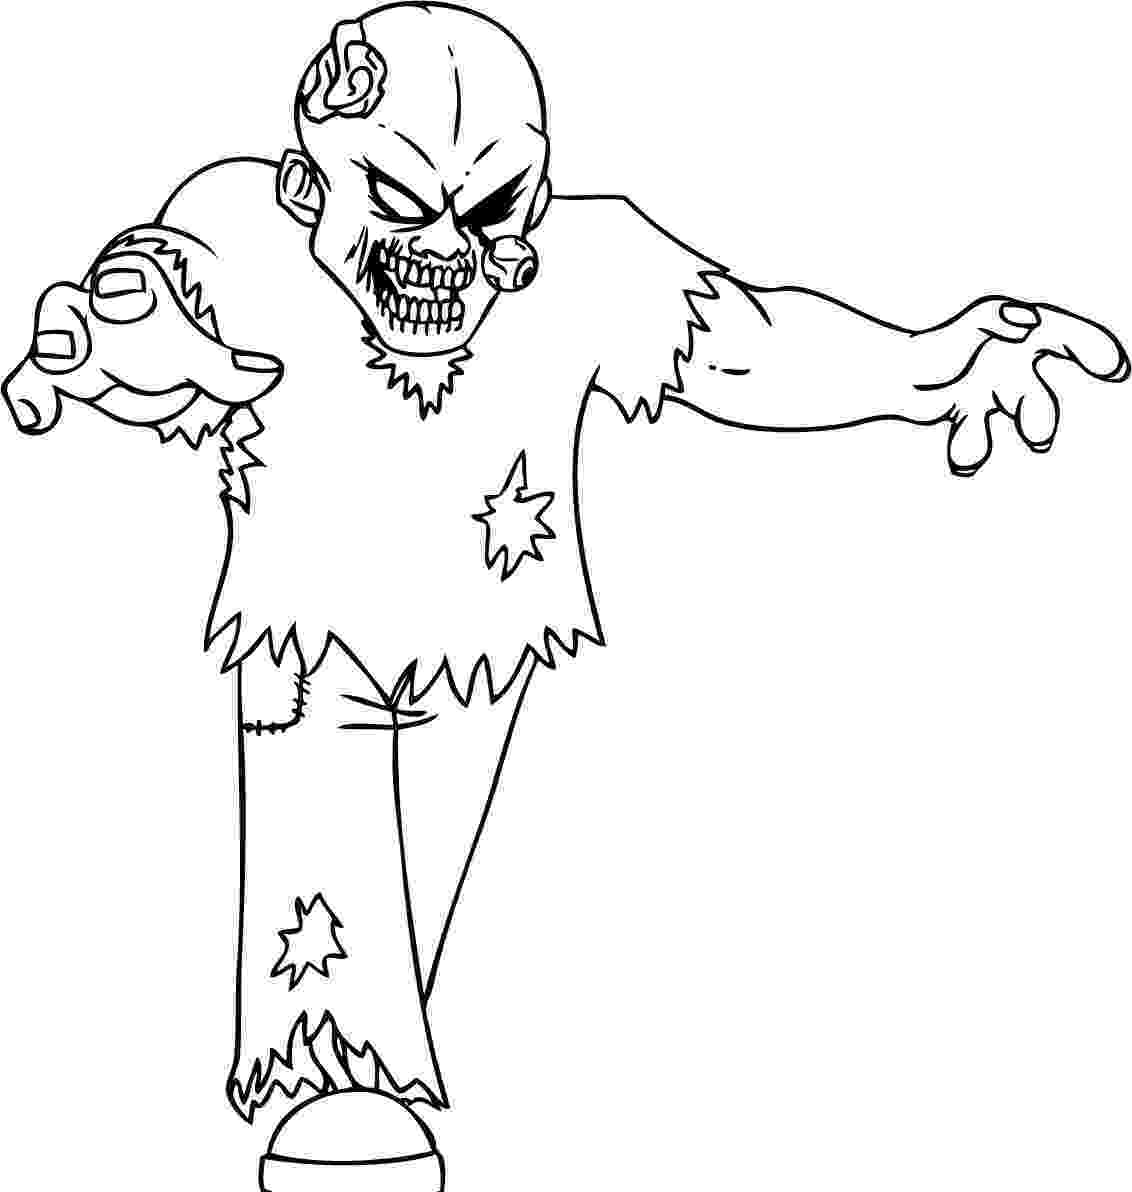 zombie coloring page free printable zombies coloring pages for kids coloring page zombie